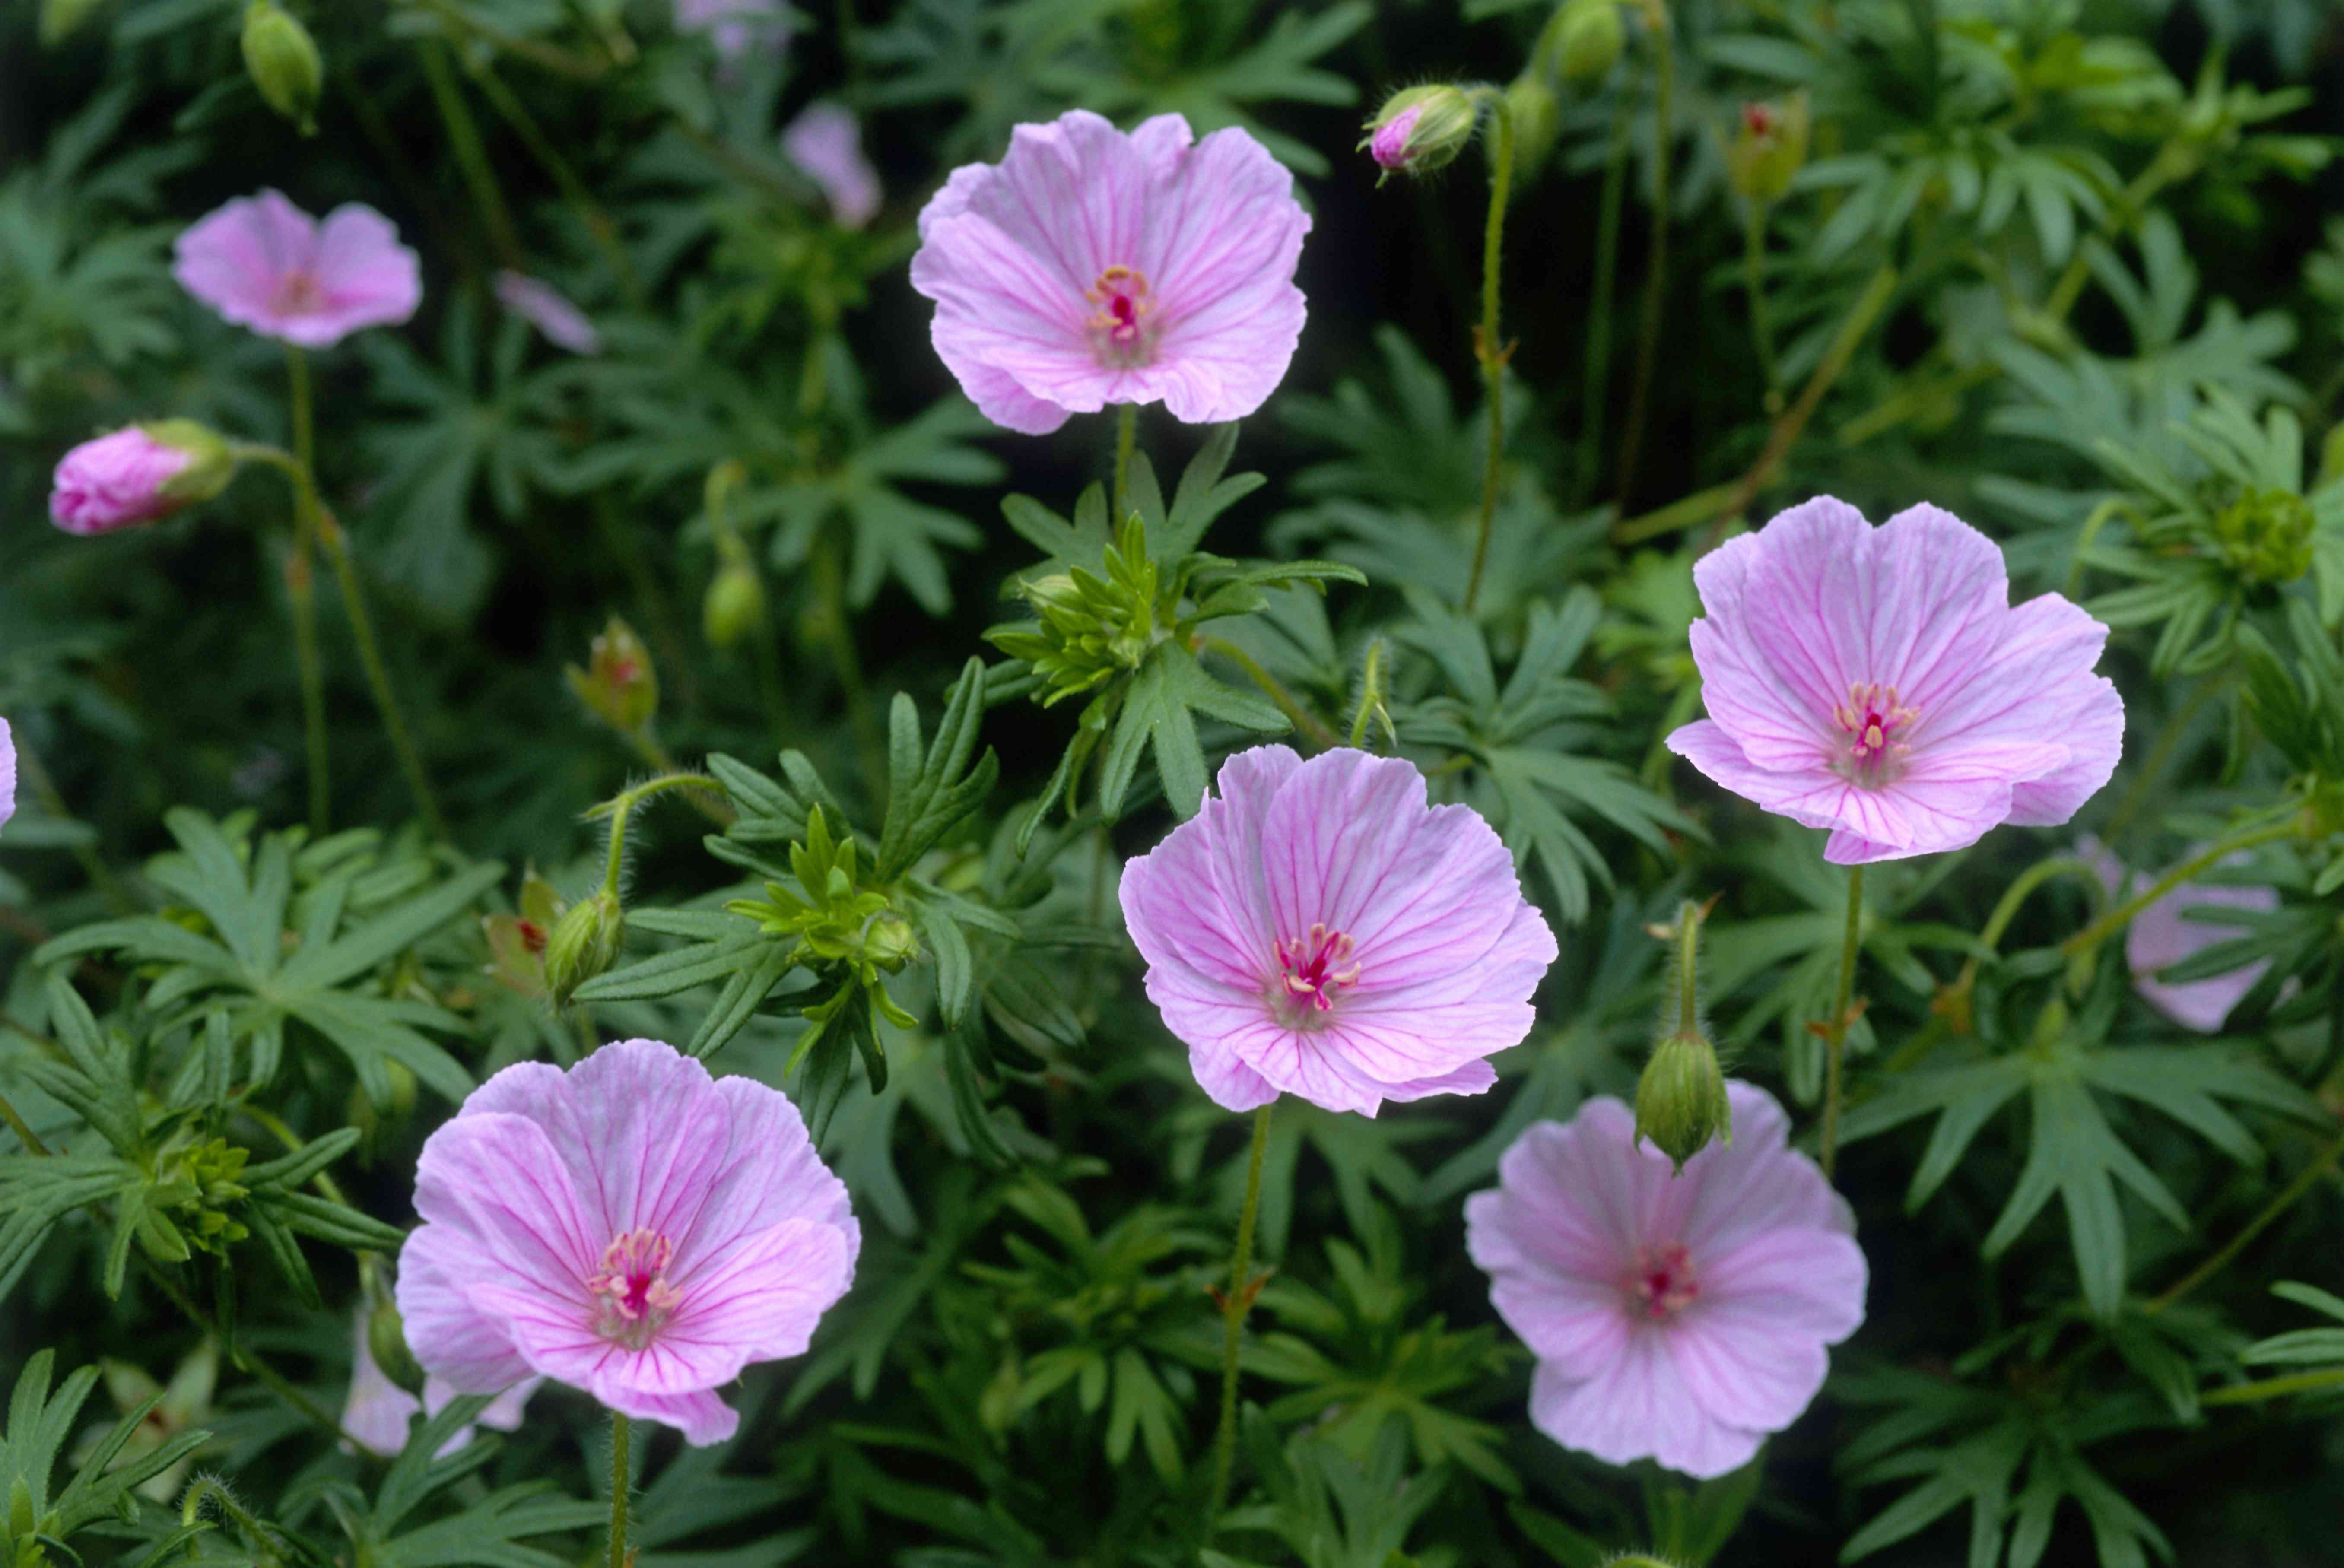 Bloody cranesbill geraniums with pink flowers